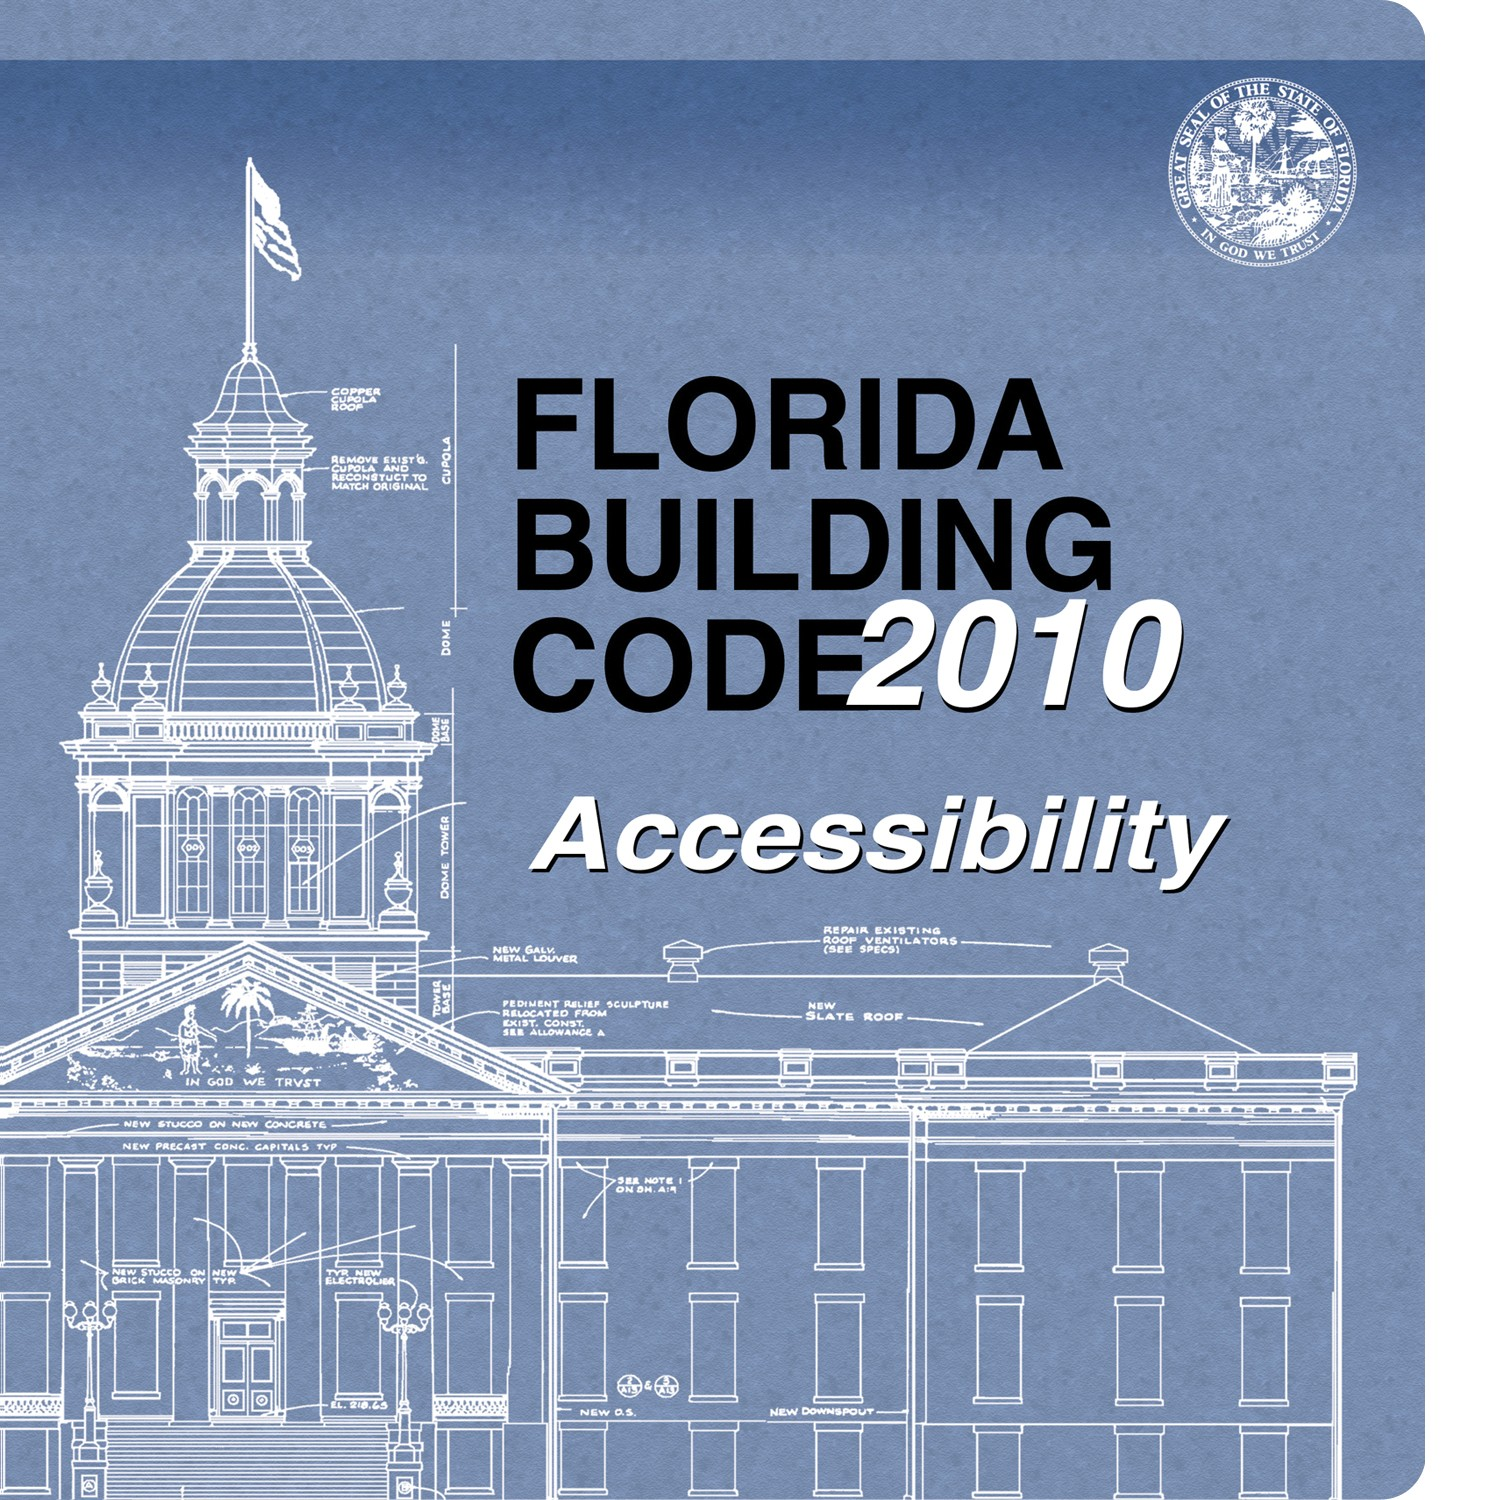 Florida Building Code - Accessibility, 2010. International Code Council, Inc